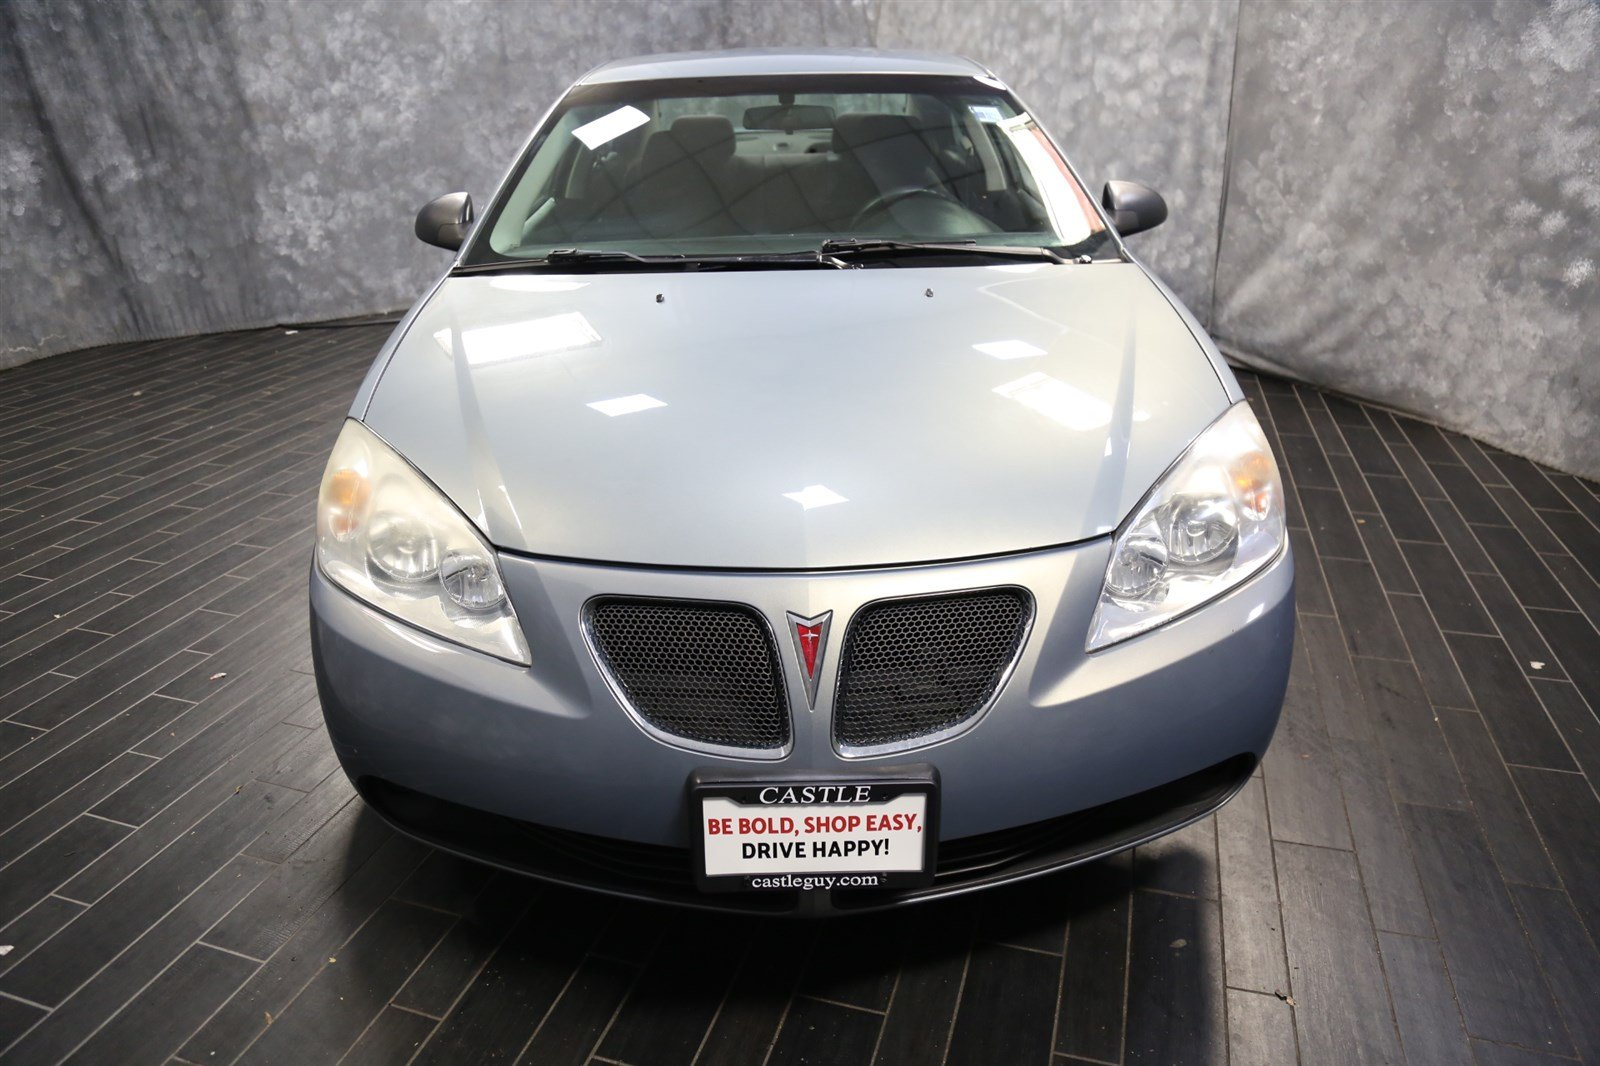 2007 Pontiac G6 Parts Manual One Word Quickstart Guide Book. 2008 Pontiac G6 Parts Diagram Trusted Wiring Diagrams U2022 Rh Radkan Co 2007 Auto. Pontiac. 2007 Pontiac G6 Part Schematics At Scoala.co